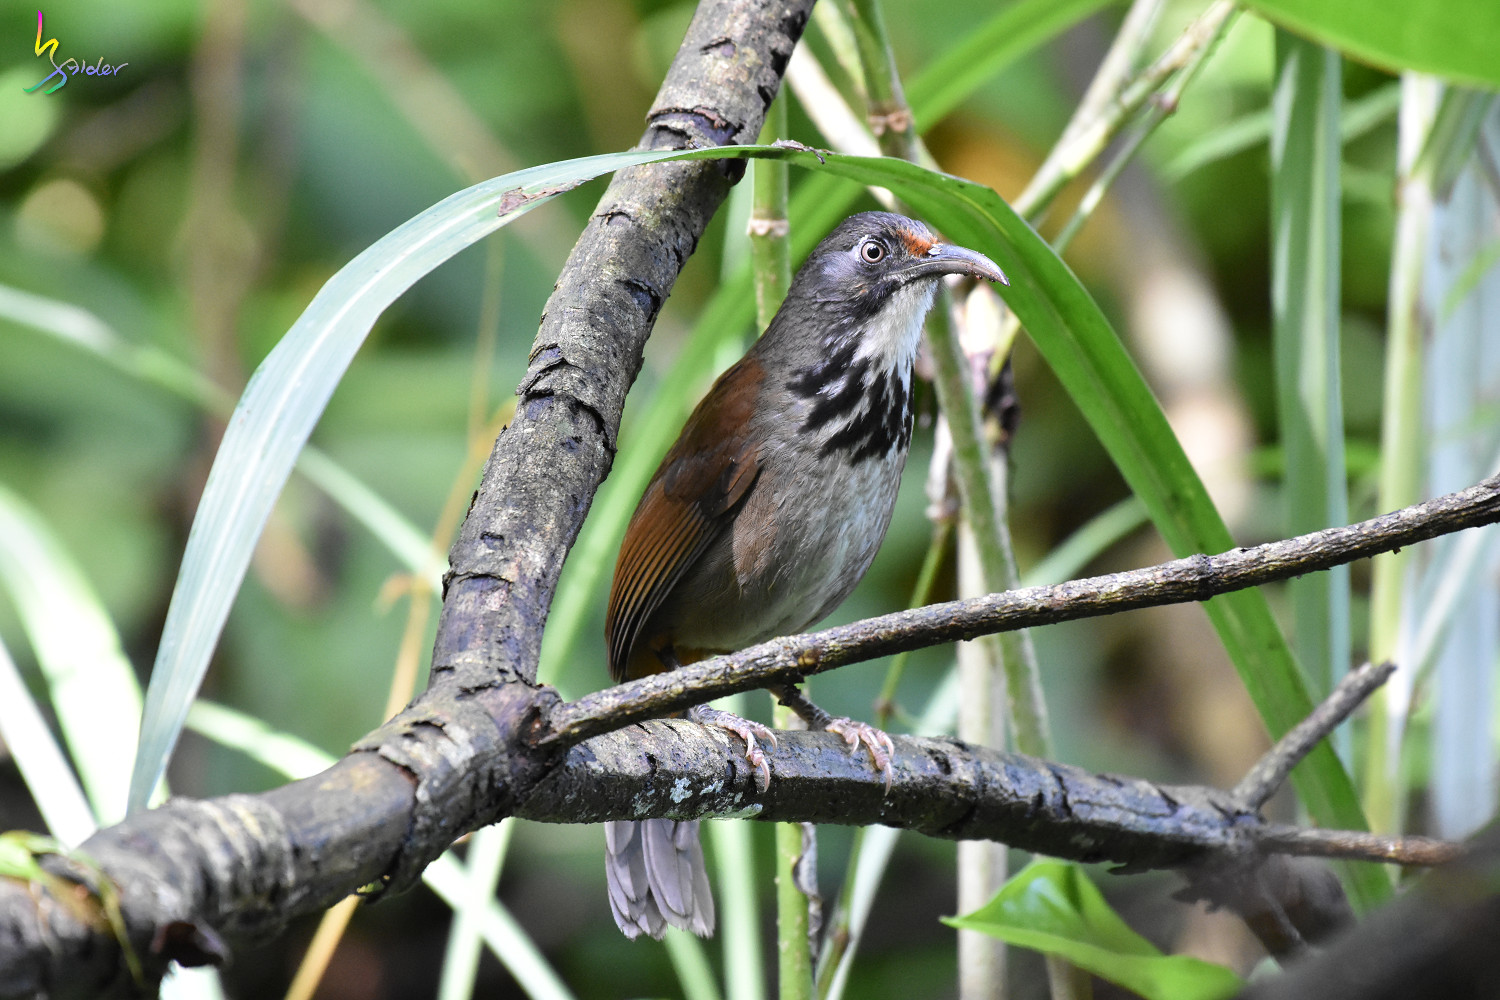 Rusty-cheeked_Scimitar-Babbler_0201